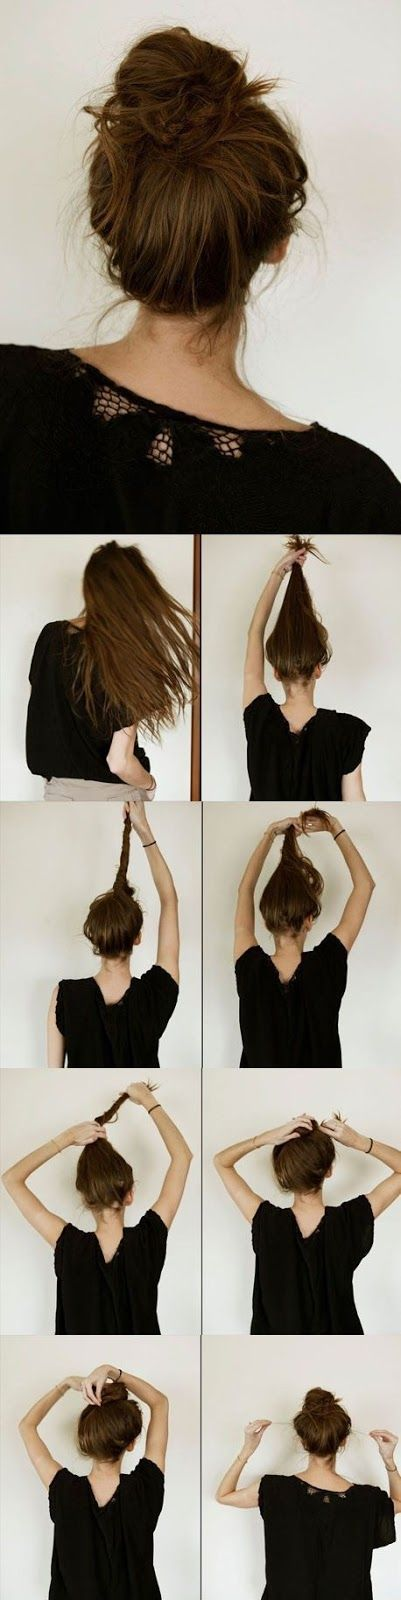 Messy bun for long hair. I've needed this!!